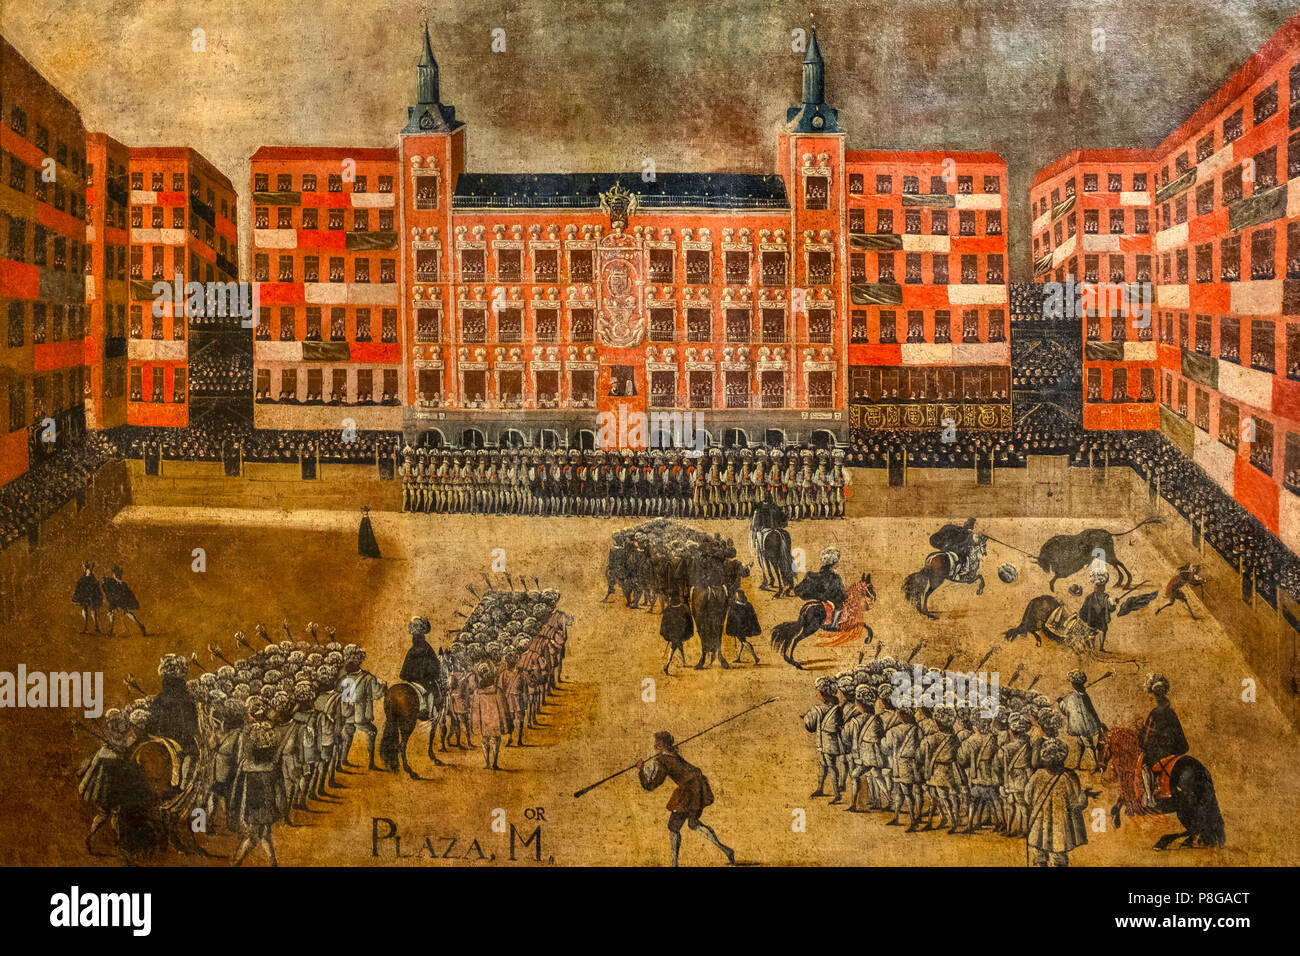 Museo Taurino Real Maestranza de Caballería. Bullfighting Festival in Plaza Mayor of Madrid. Anonymous, Madrid School 1679. Oil on canvas. Monumental  - Stock Image